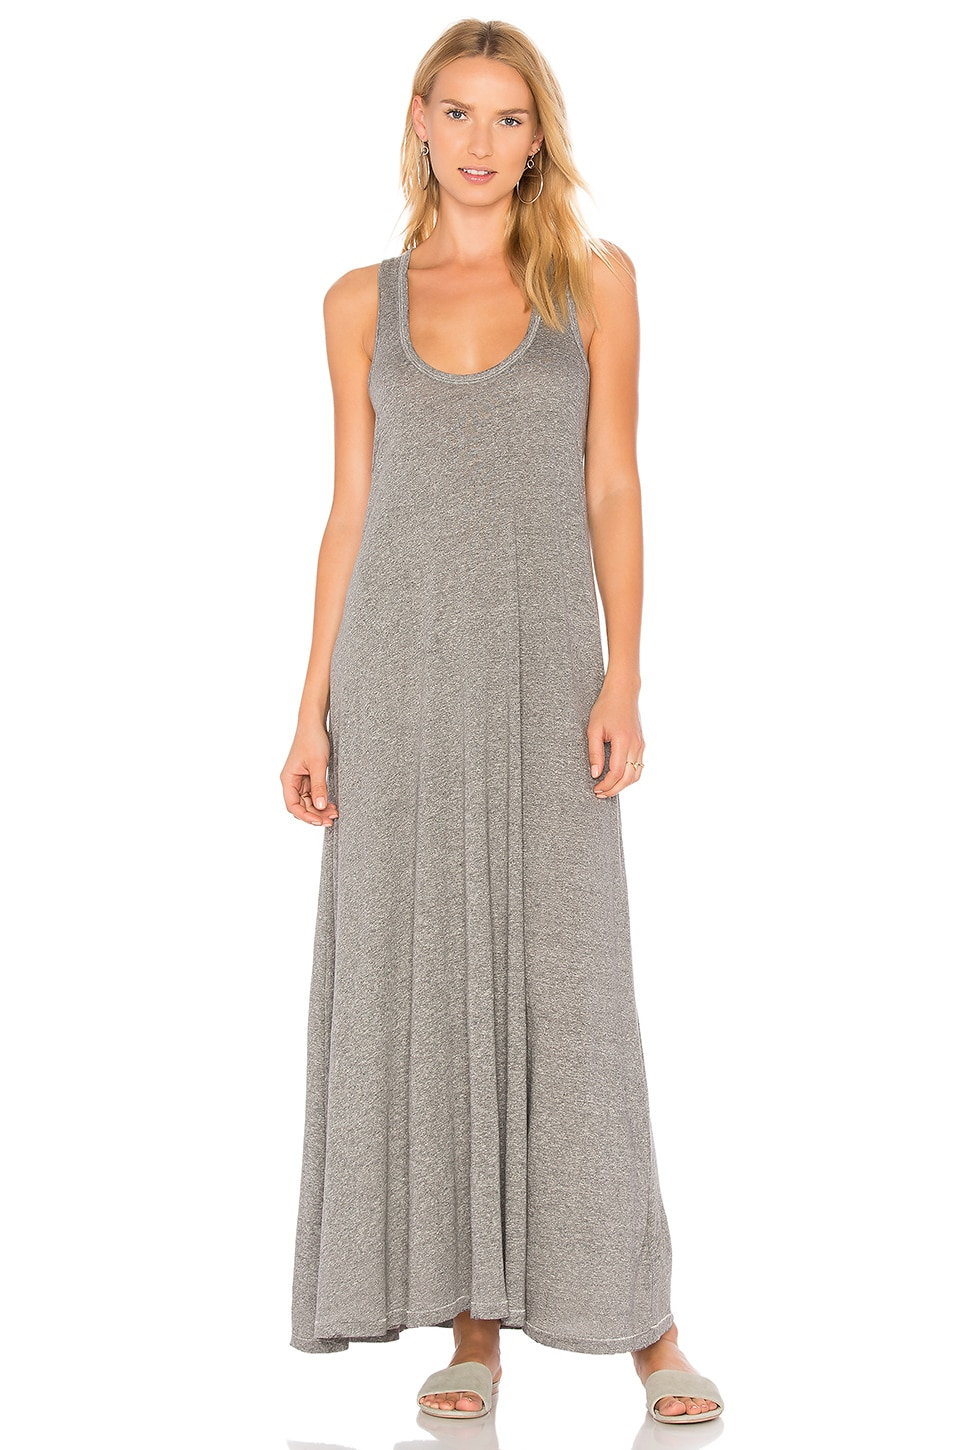 The Great The Swing Tank Maxi Dress in Heather Grey | REVOLVE